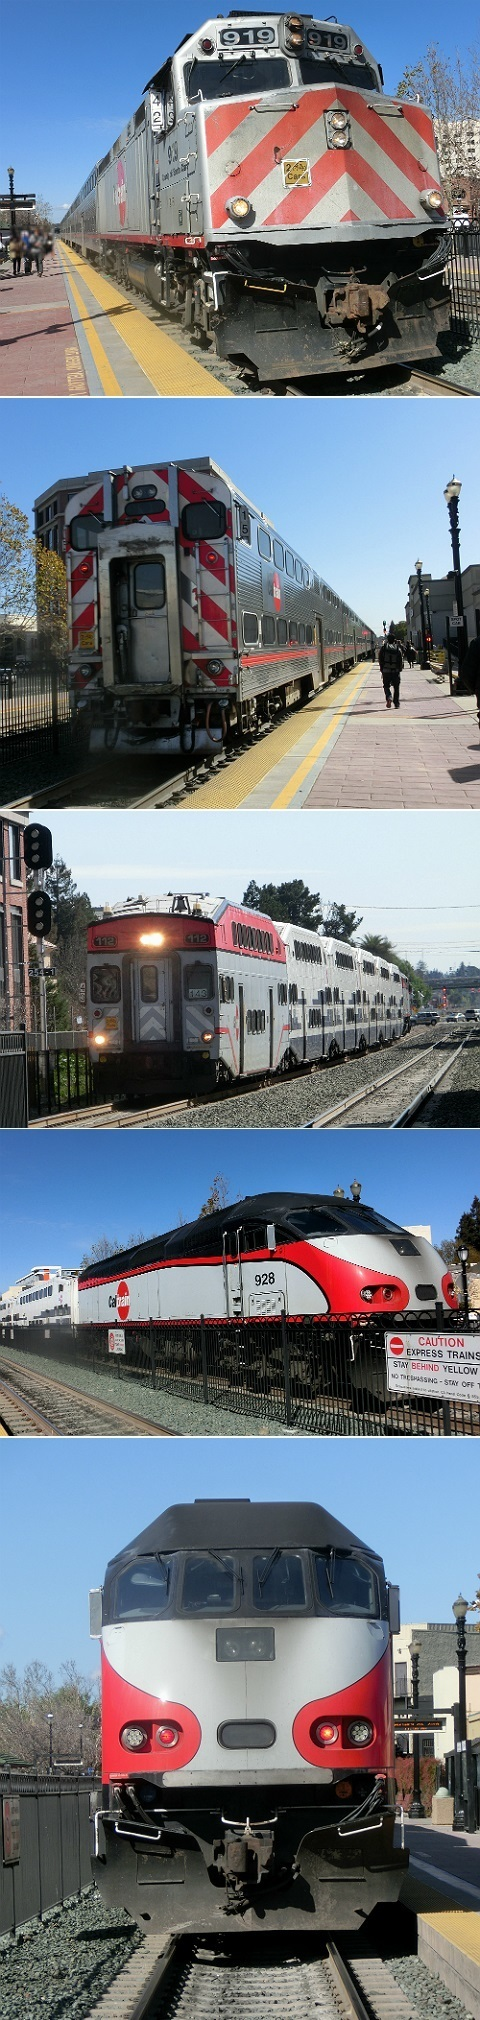 アメリカ出張【Caltrain @Redwood City】